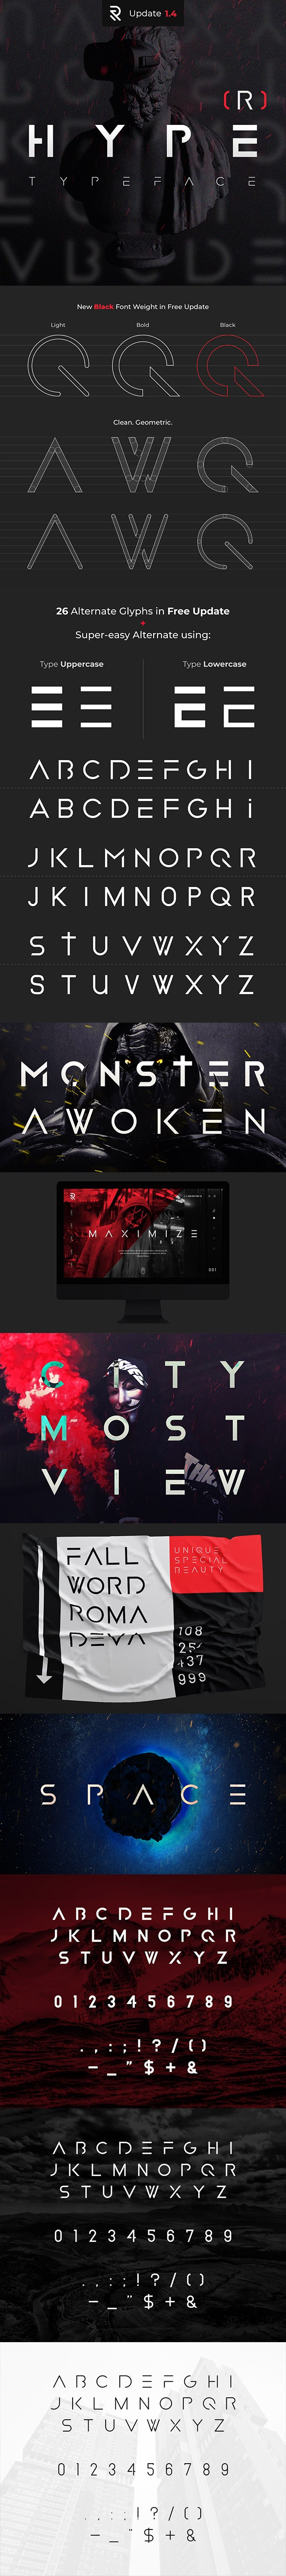 HYPE(R) Strong Modern Font - Futuristic Decorative